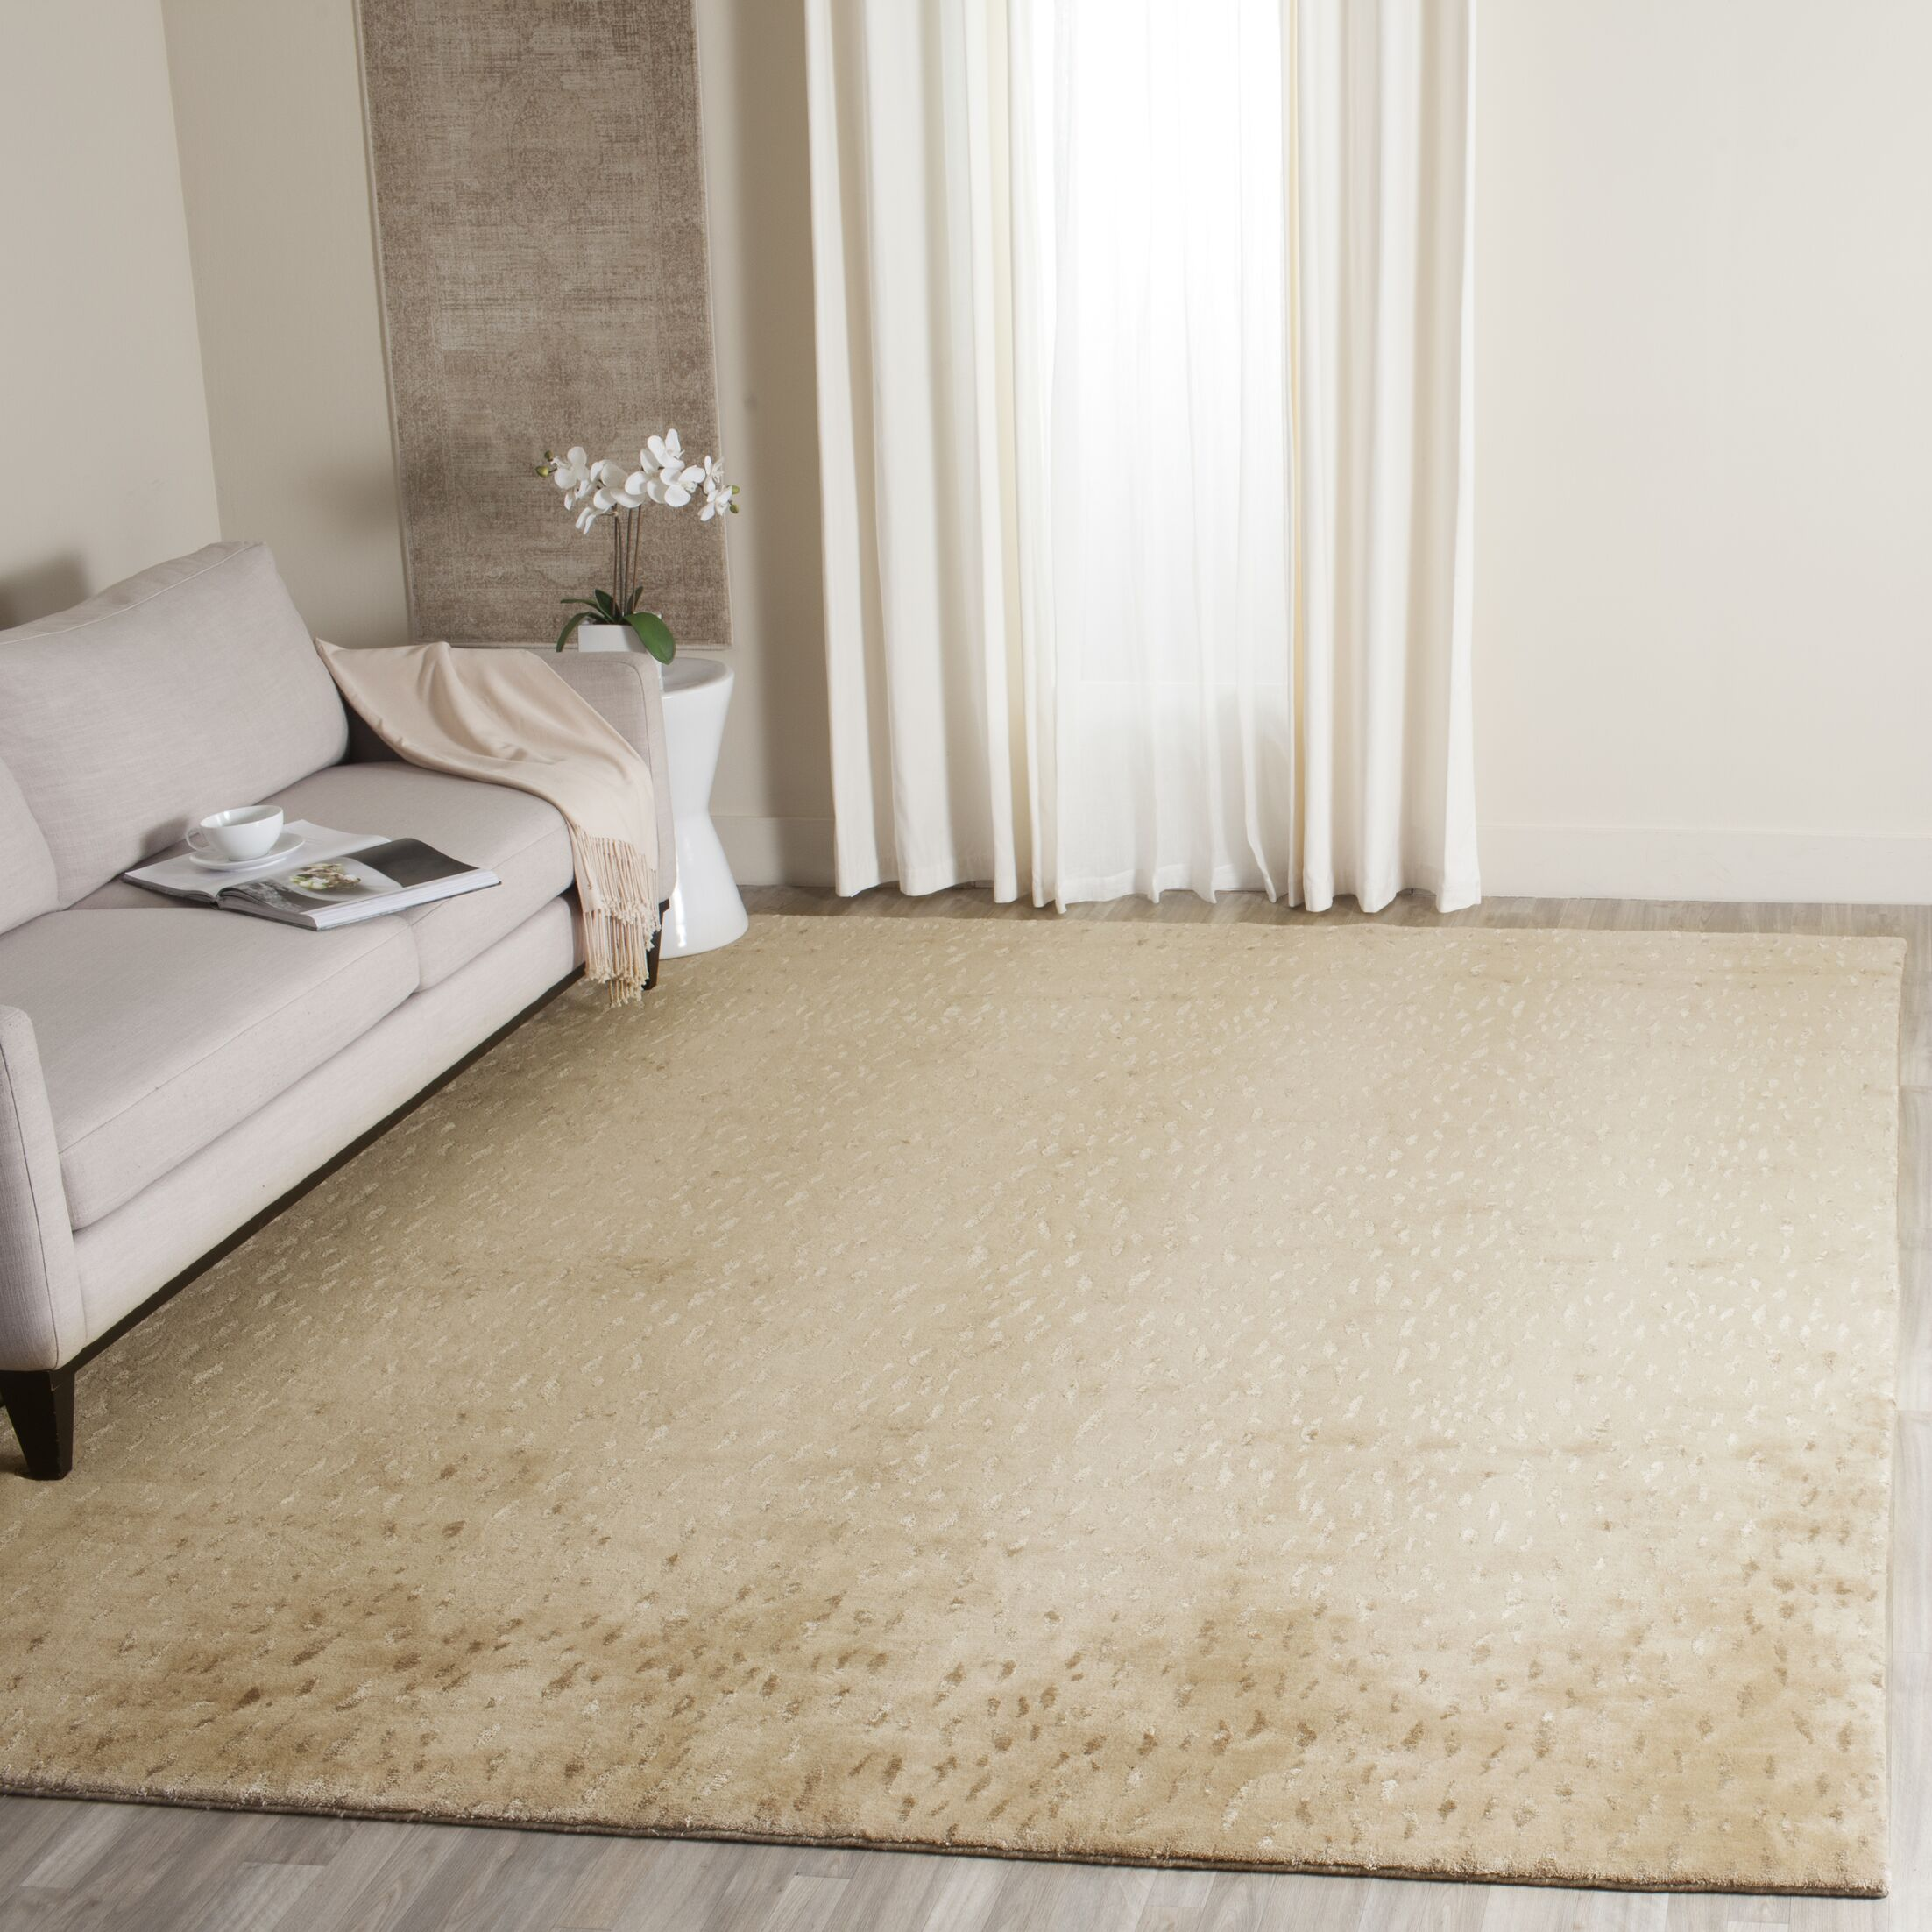 Anguiano Hand-Knotted Beige Area Rug Rug Size: Rectangle 4' x 6'